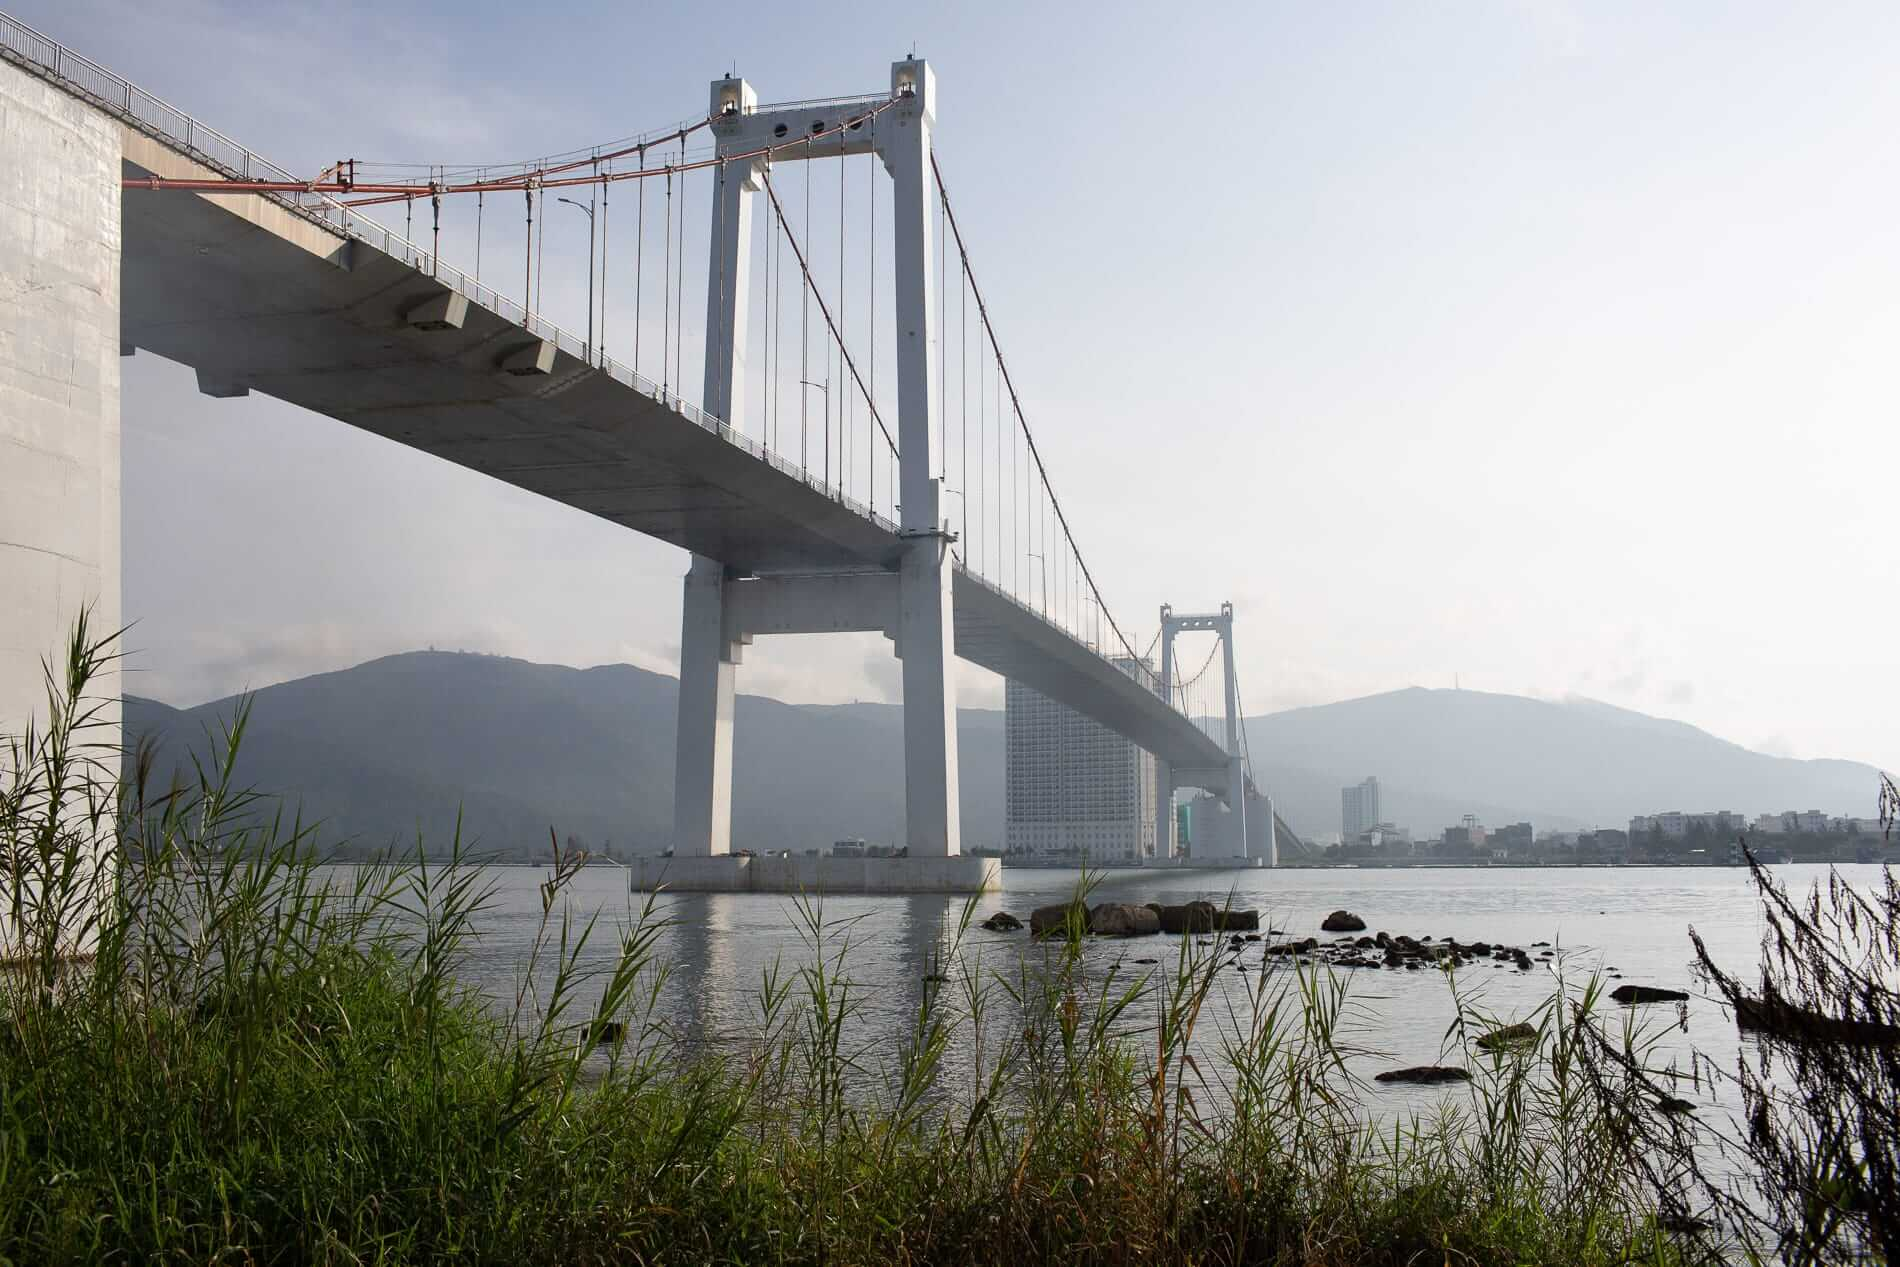 Thuan Phuoc Bridge in one of Da Nang bridges